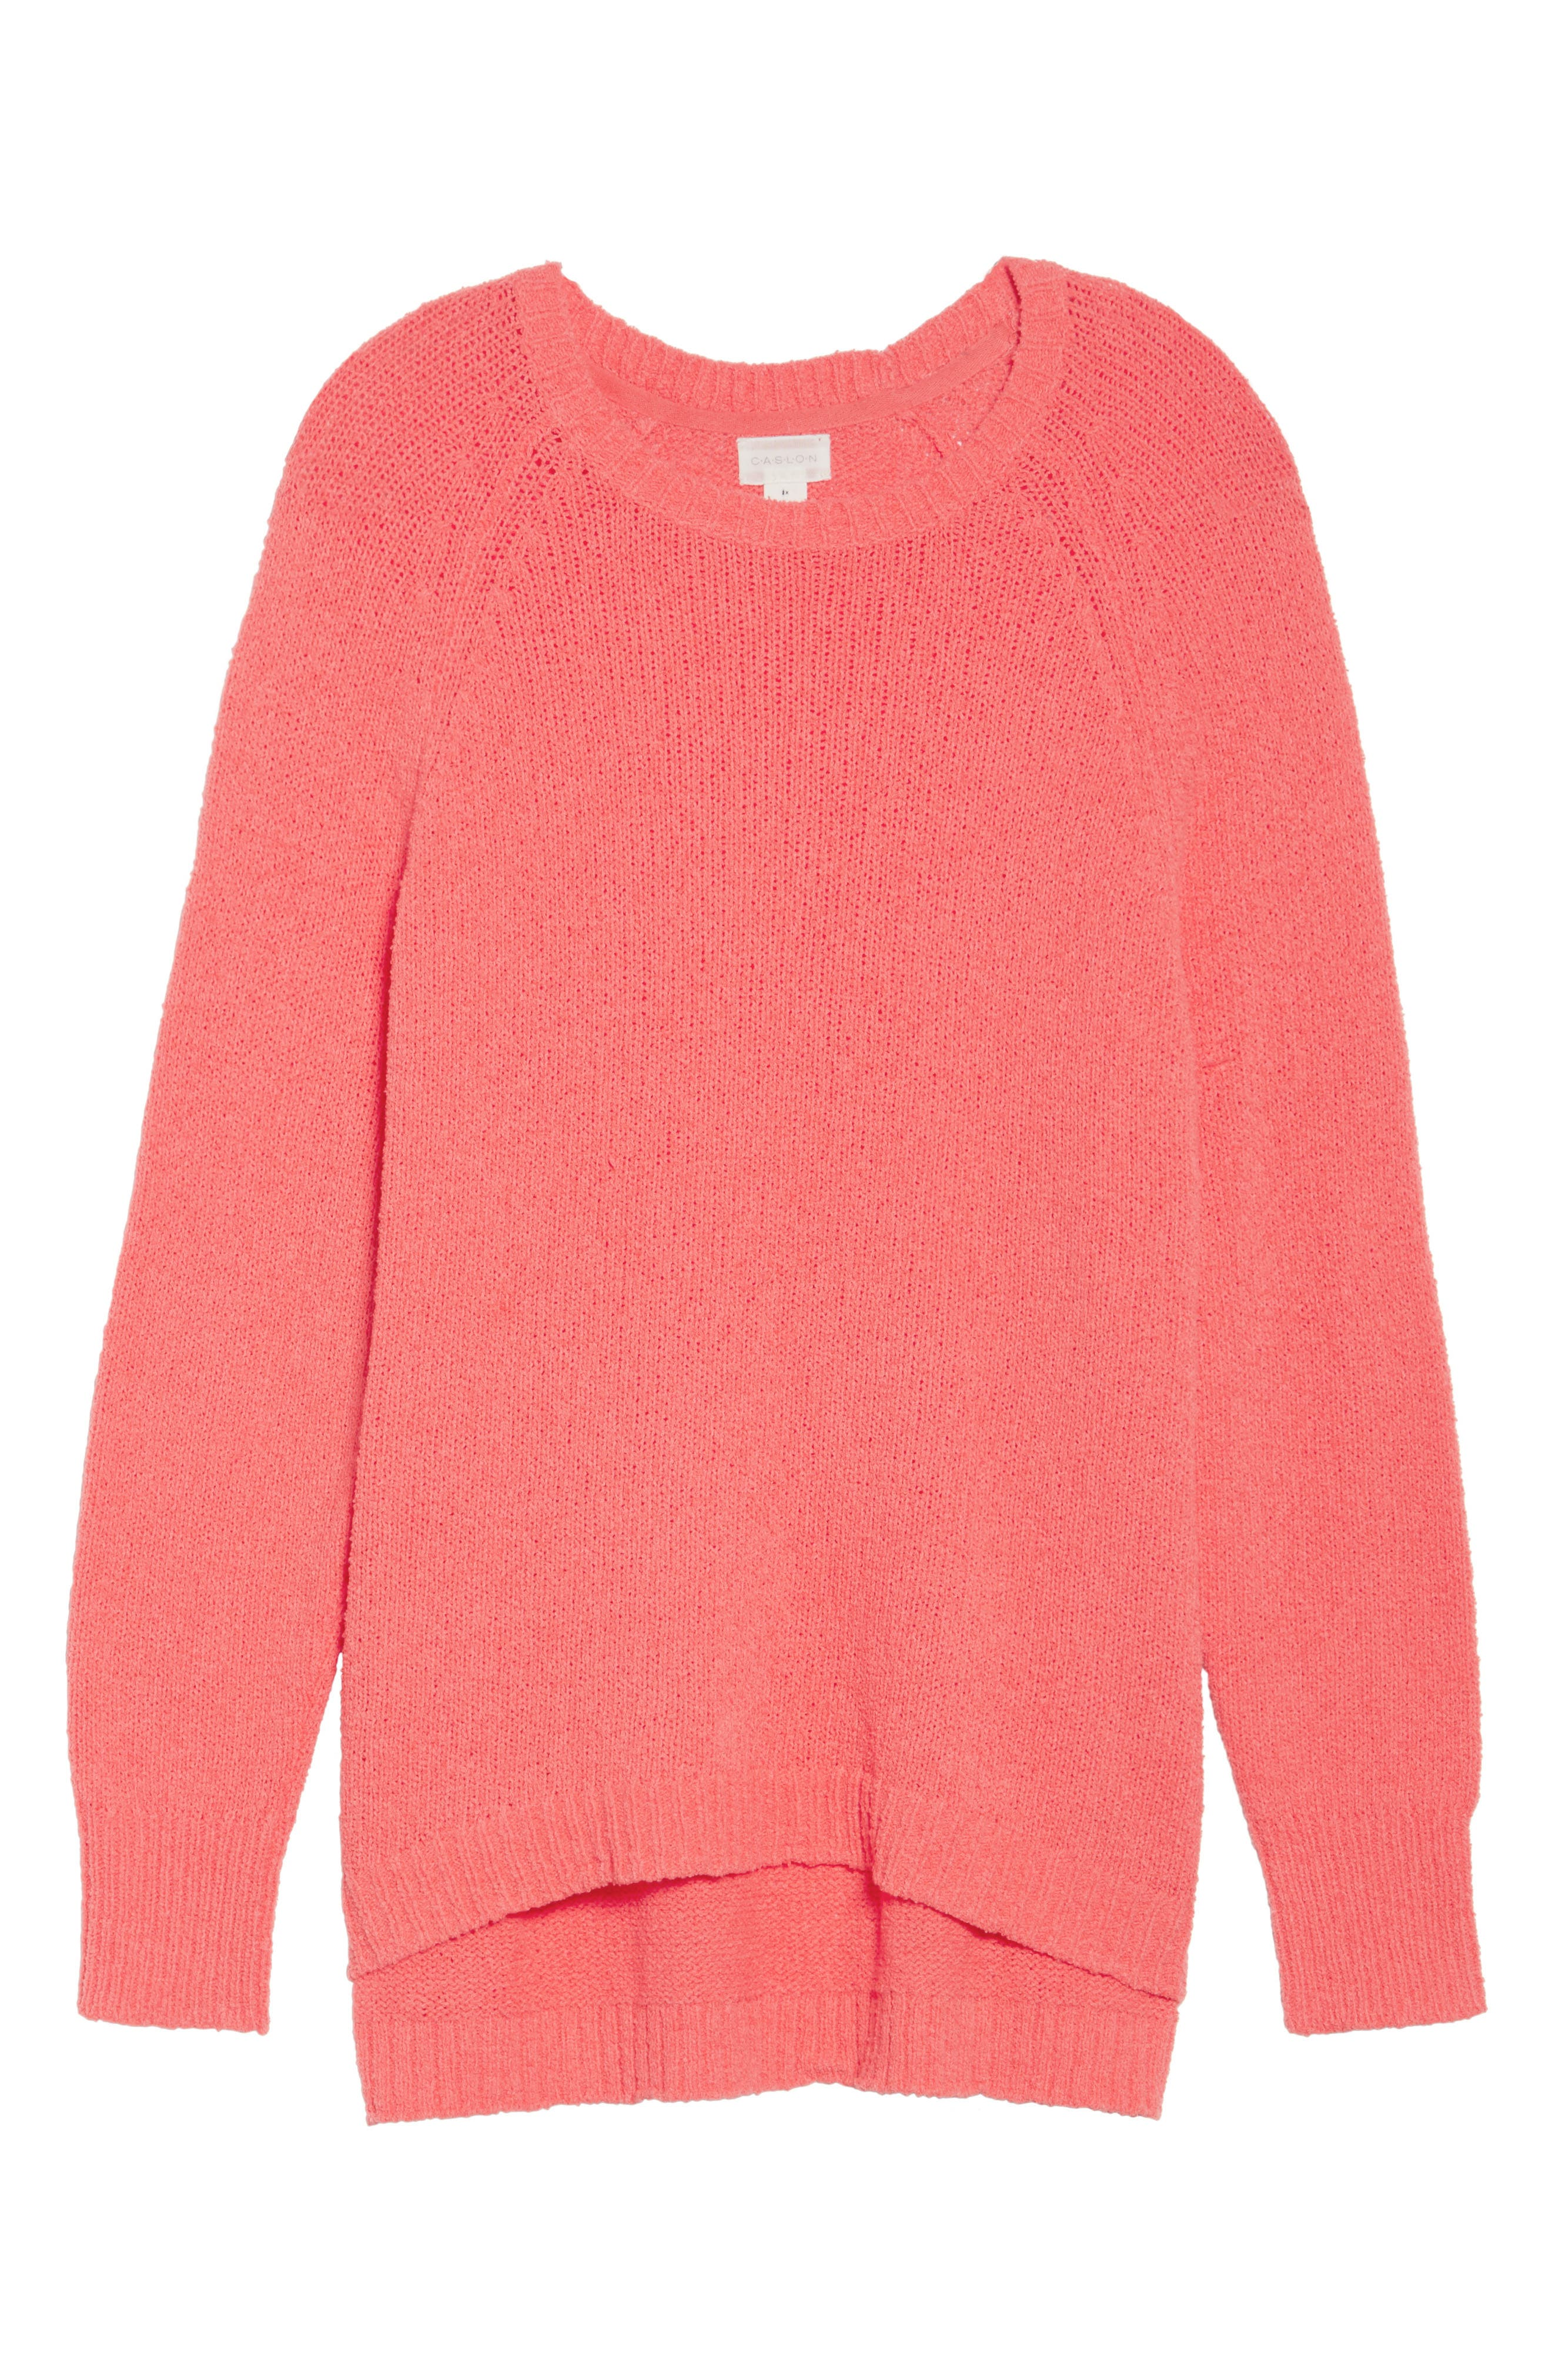 Relaxed Crewneck Sweater,                             Alternate thumbnail 7, color,                             Coral Sea